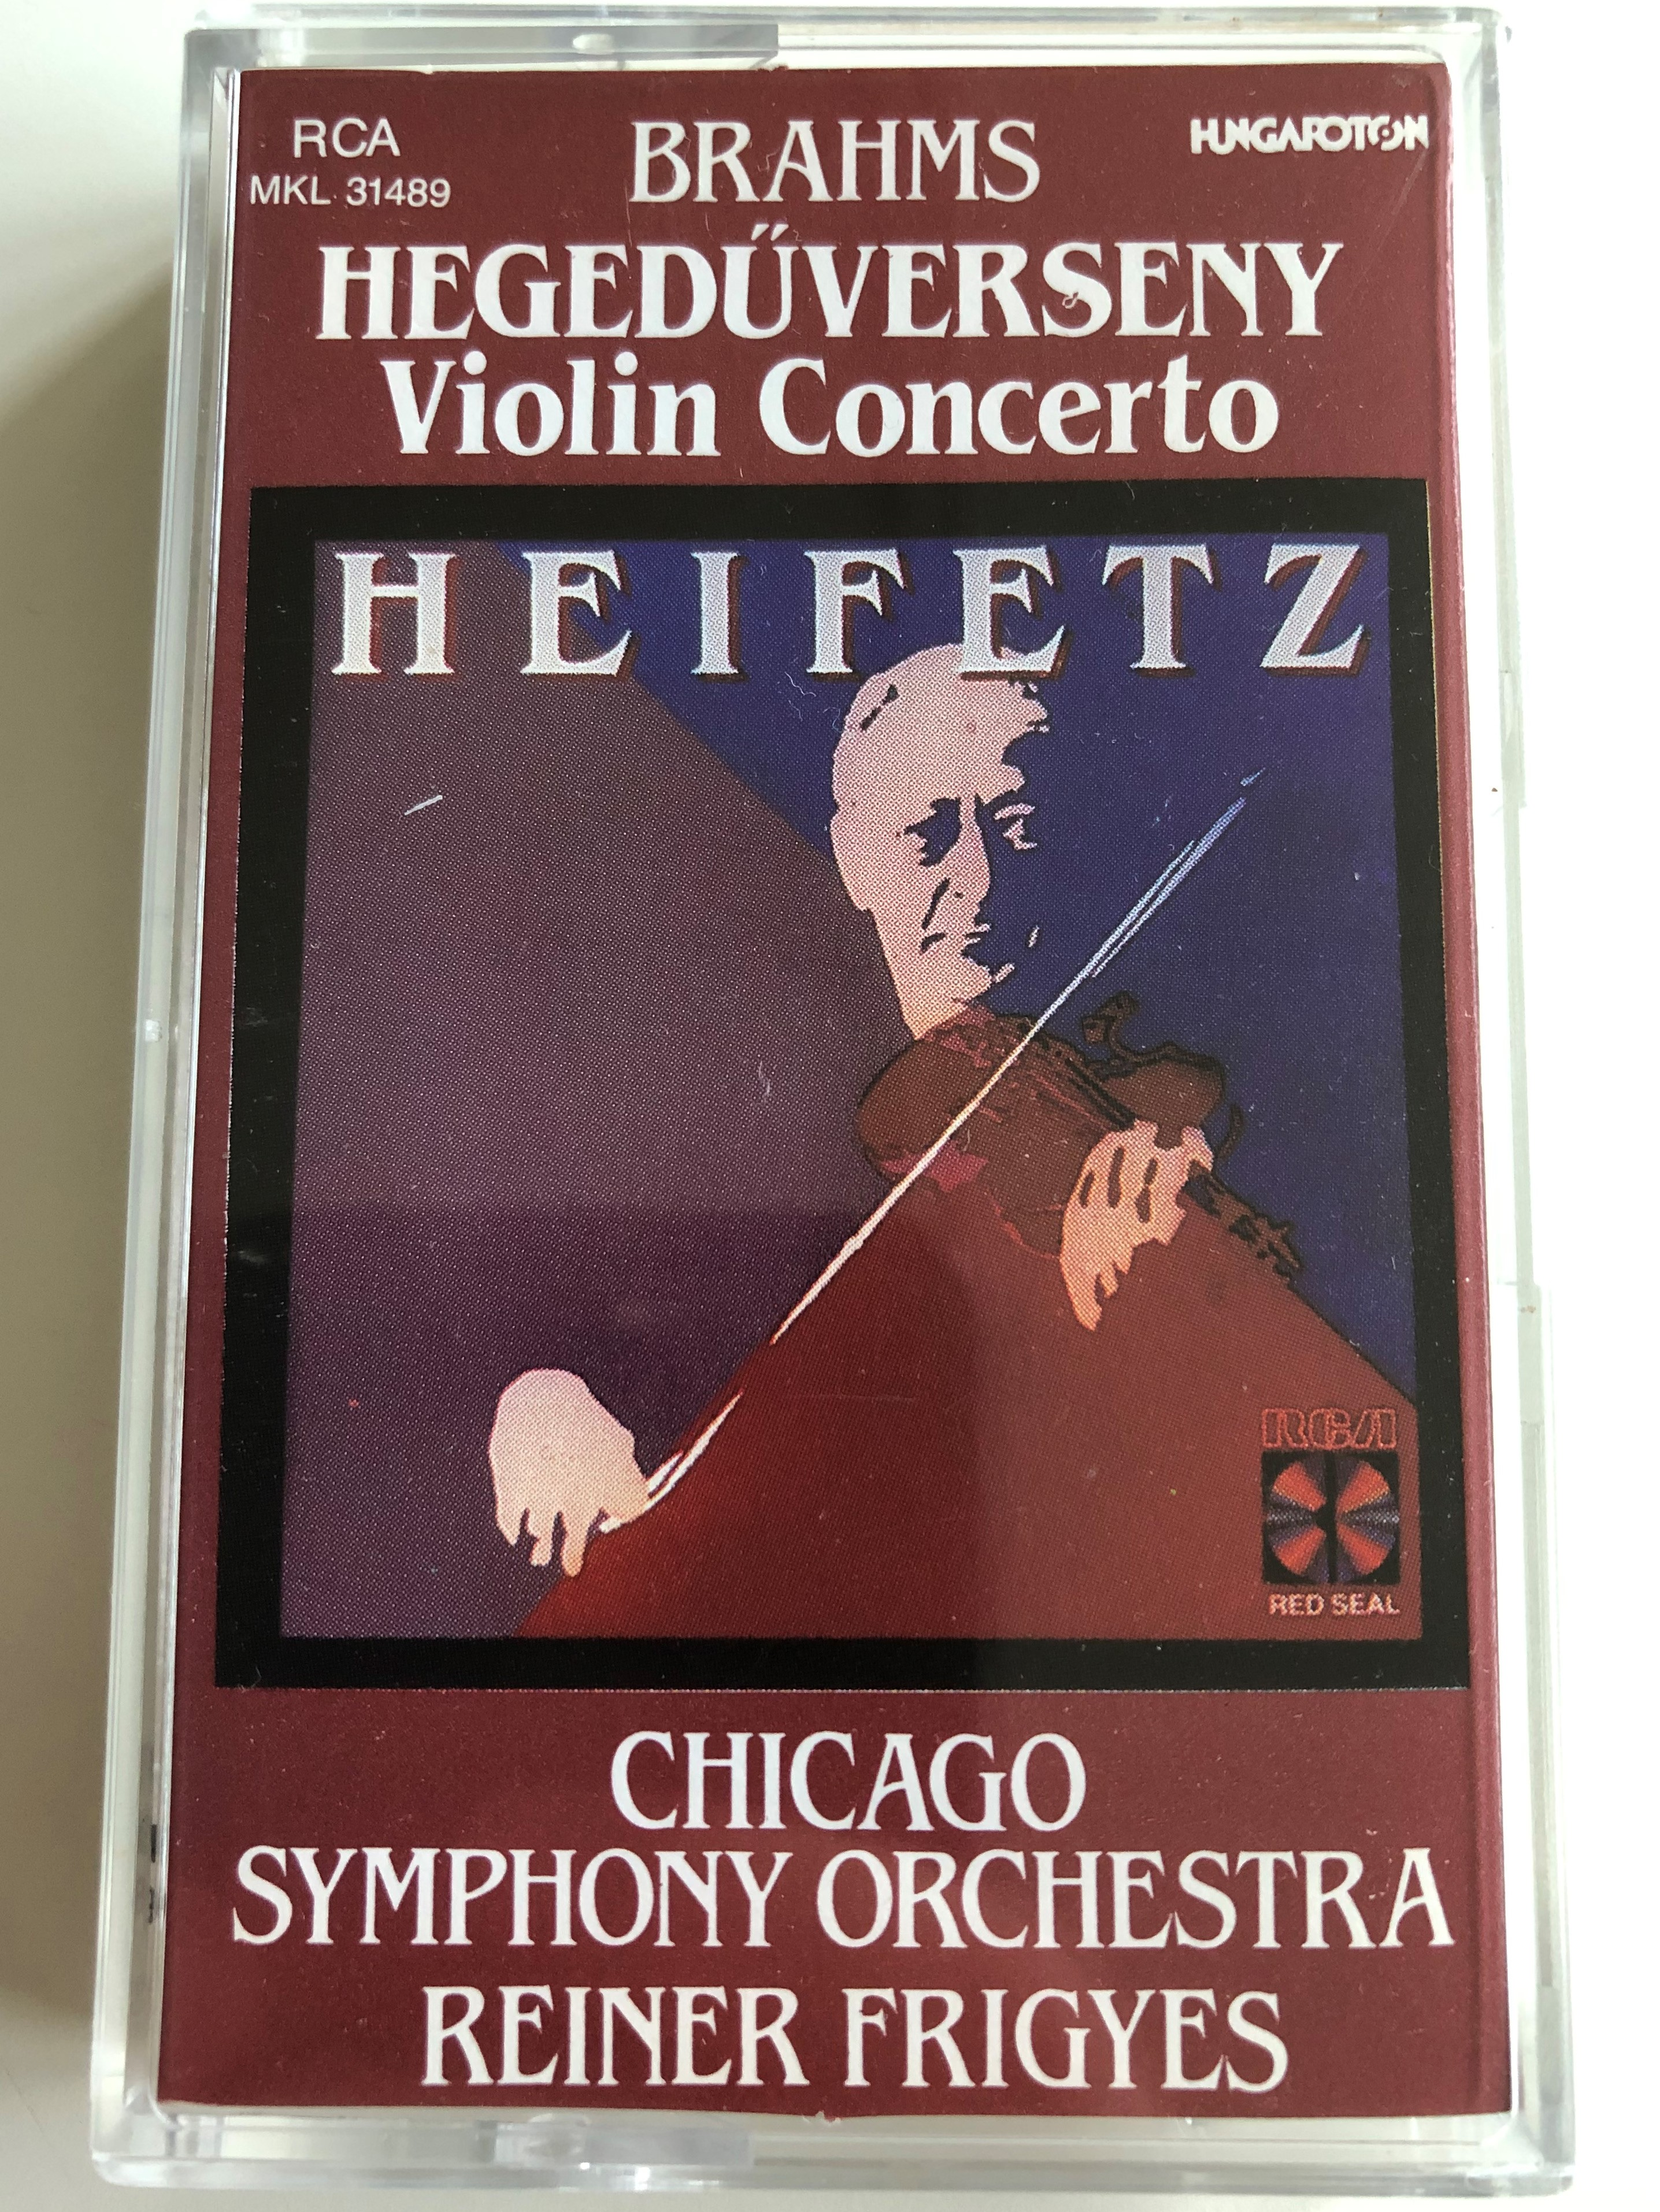 brahms-heged-verseny-violin-concerto-chicago-symphony-orchestra-conducted-reiner-frigyes-hungaroton-rca-cassette-stereo-mkl-31489-1-.jpg